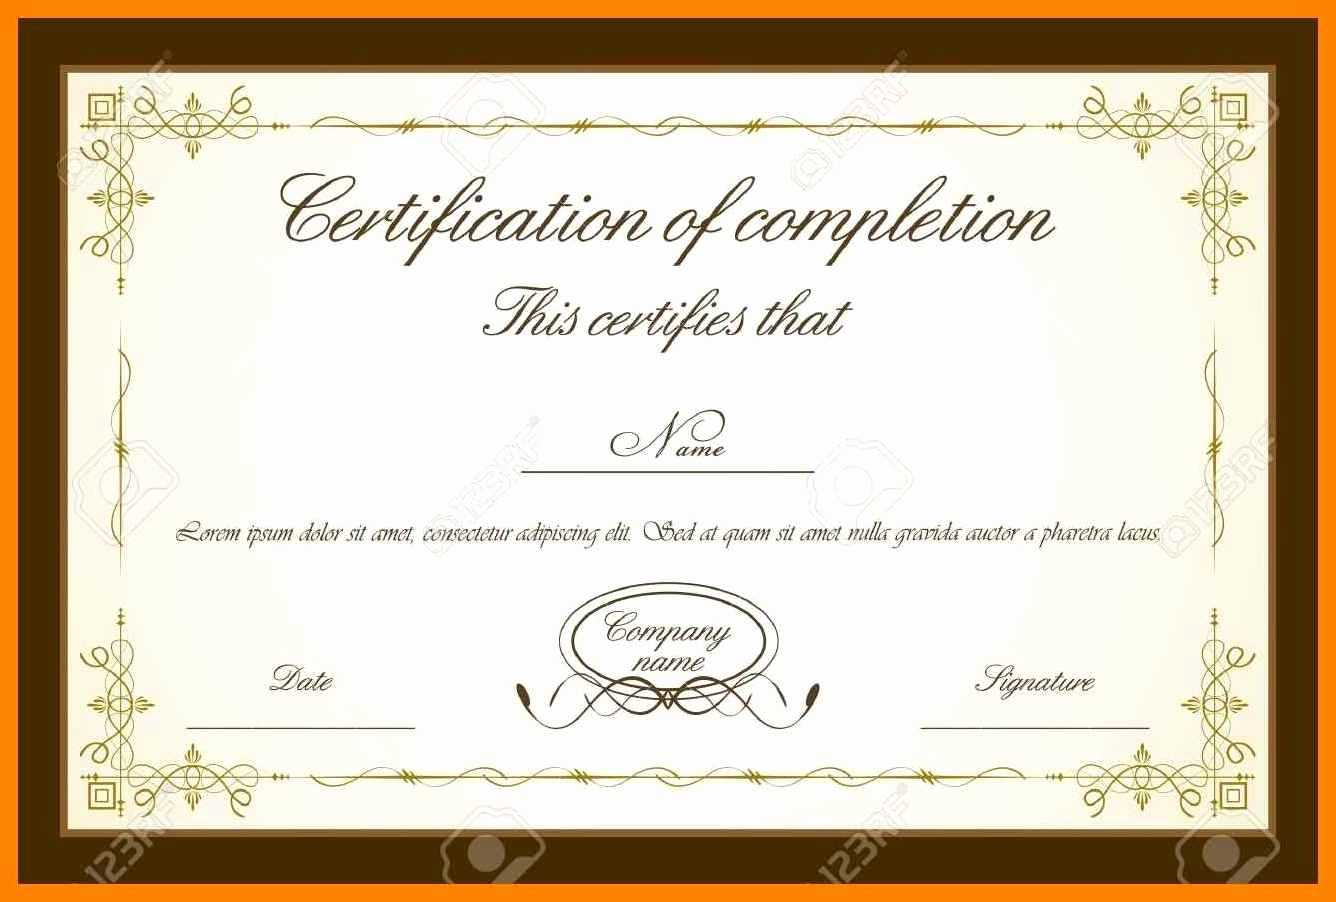 033 Template Ideas Training Certificate Free Download Best intended for Free Completion Certificate Templates For Word